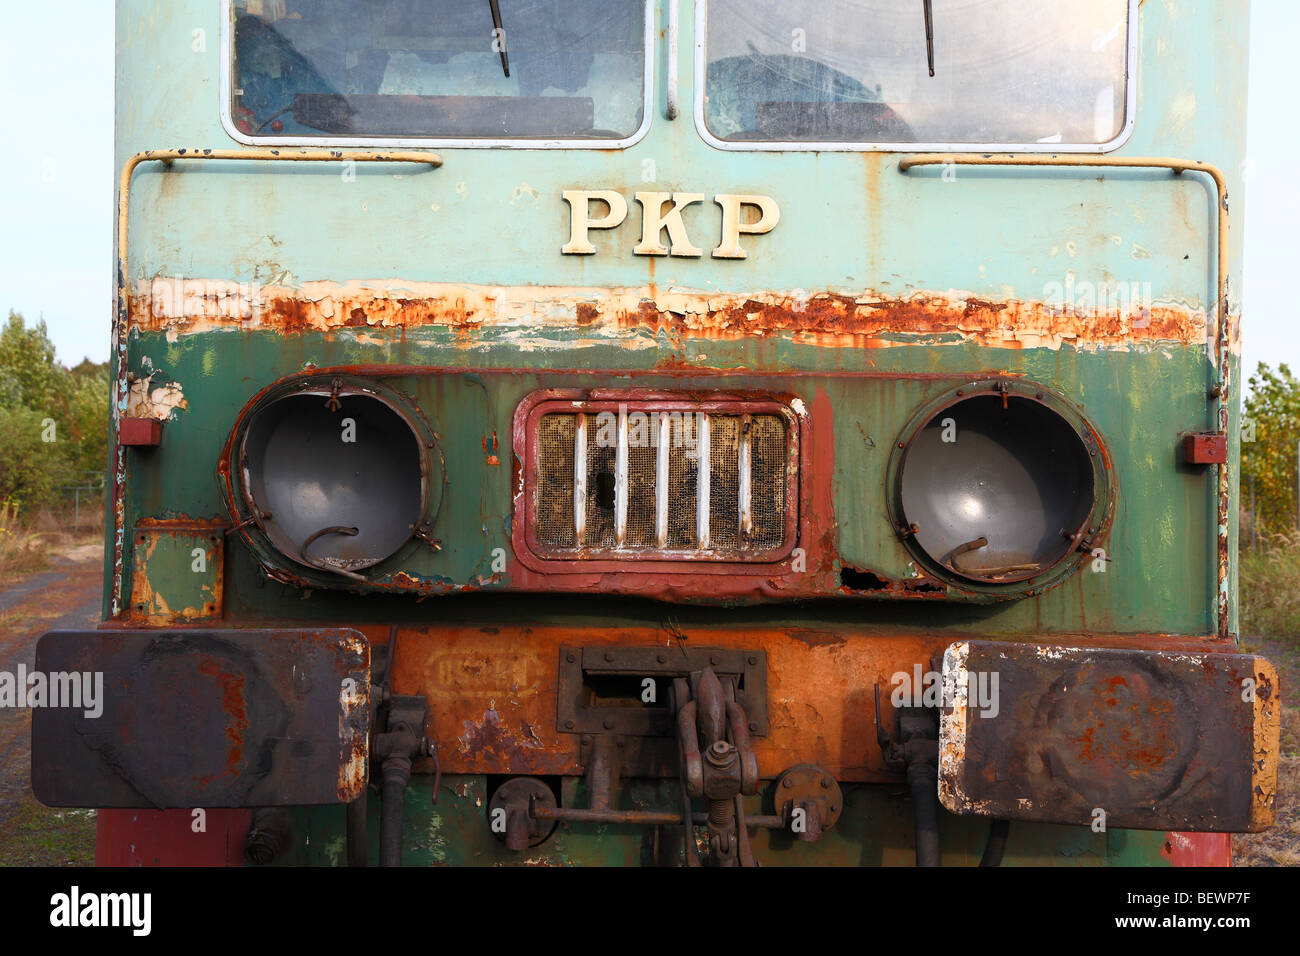 Abandoned old locomotive left alone deserted - Stock Image